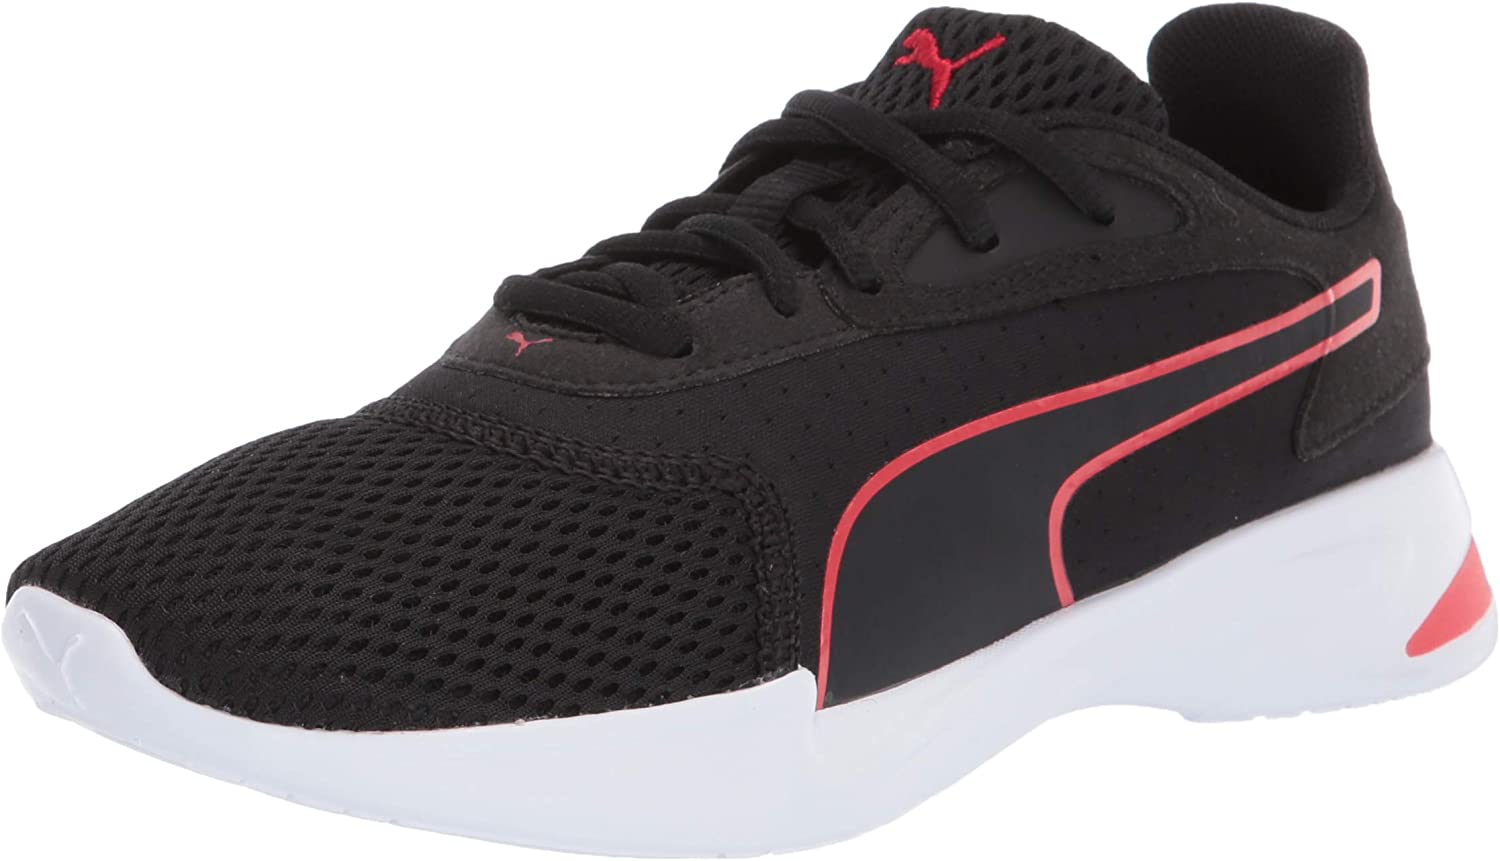 PUMA Kids Boys Jaro Lace Up Sneakers Shoes Casual - Black